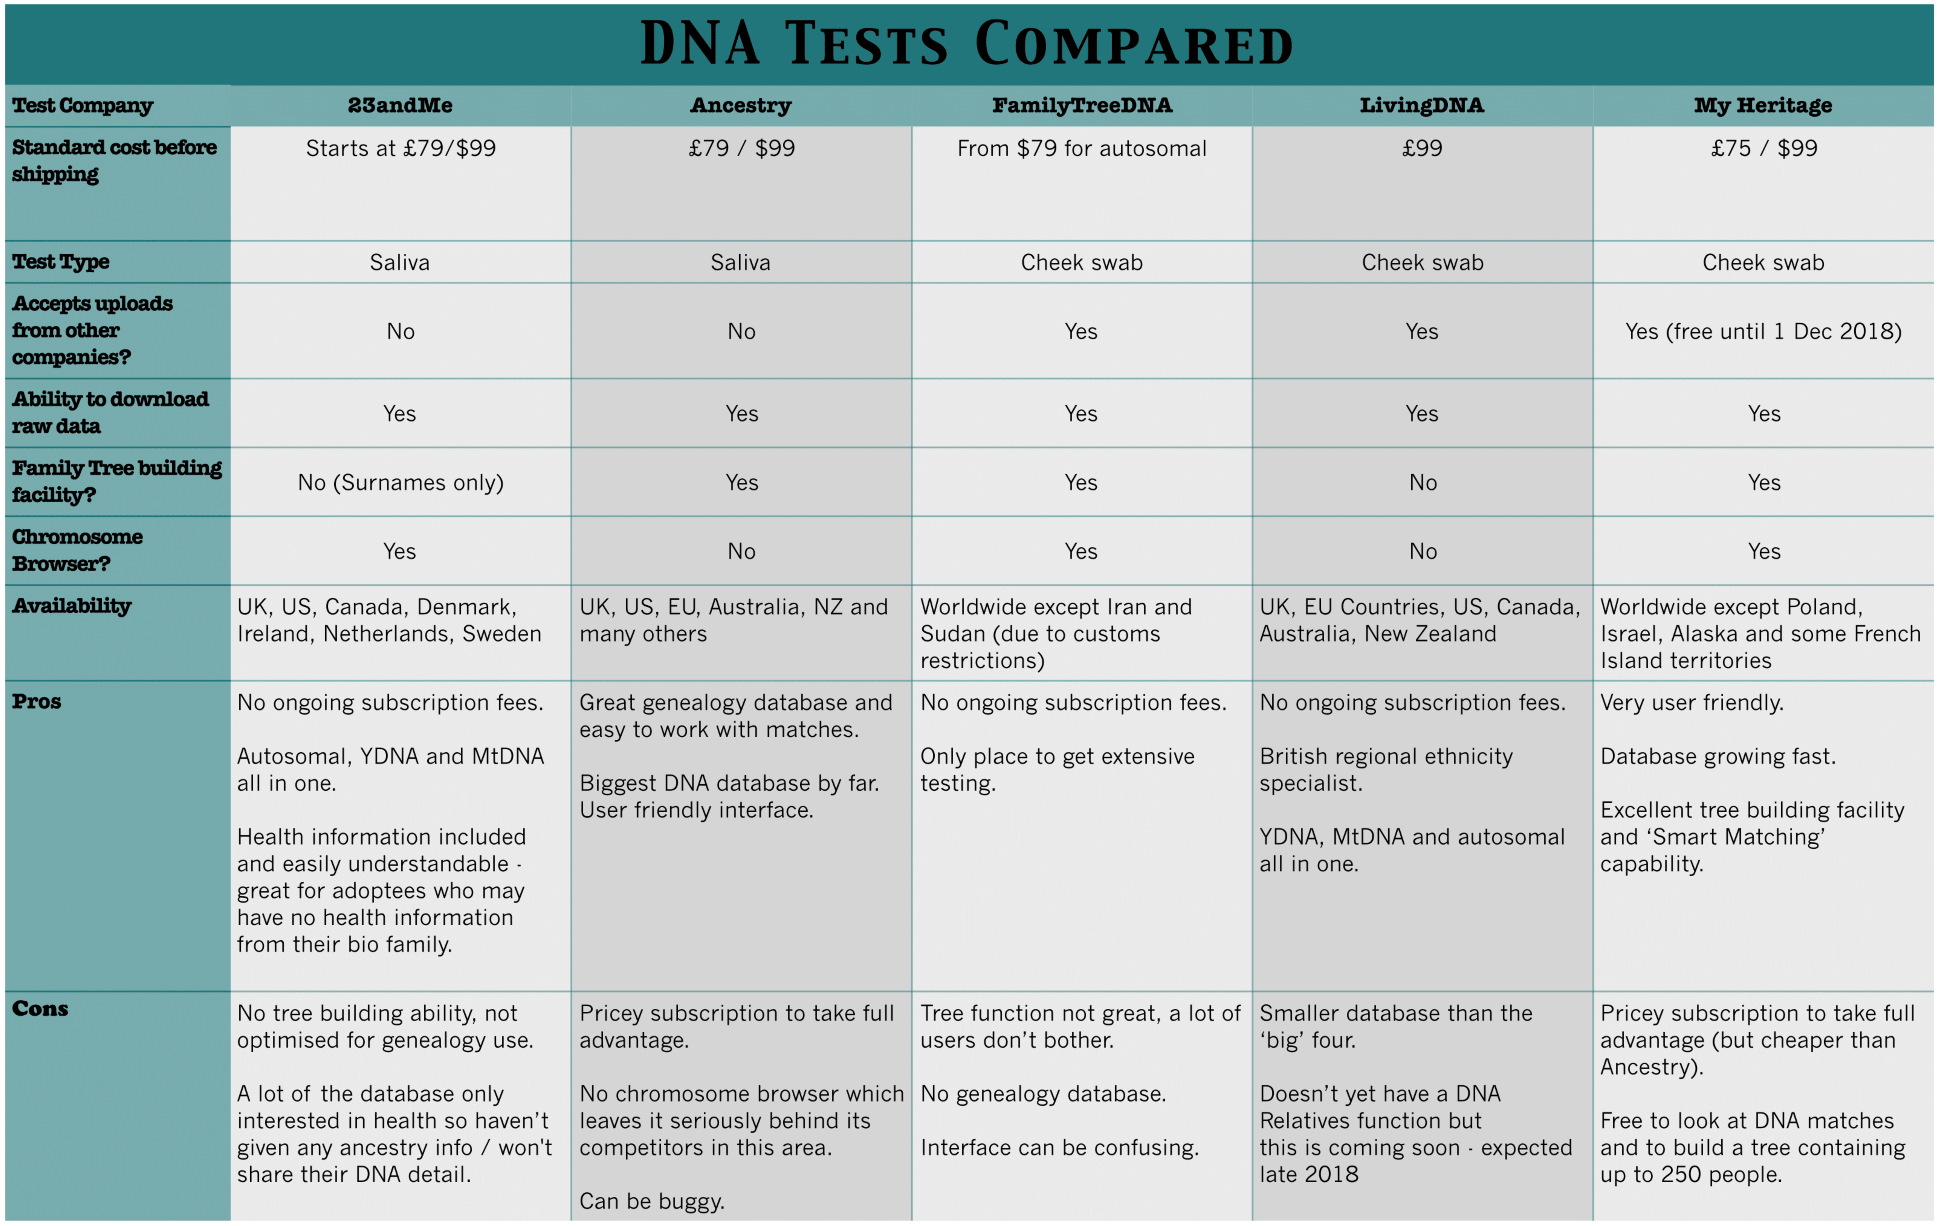 DNA tests companies compared